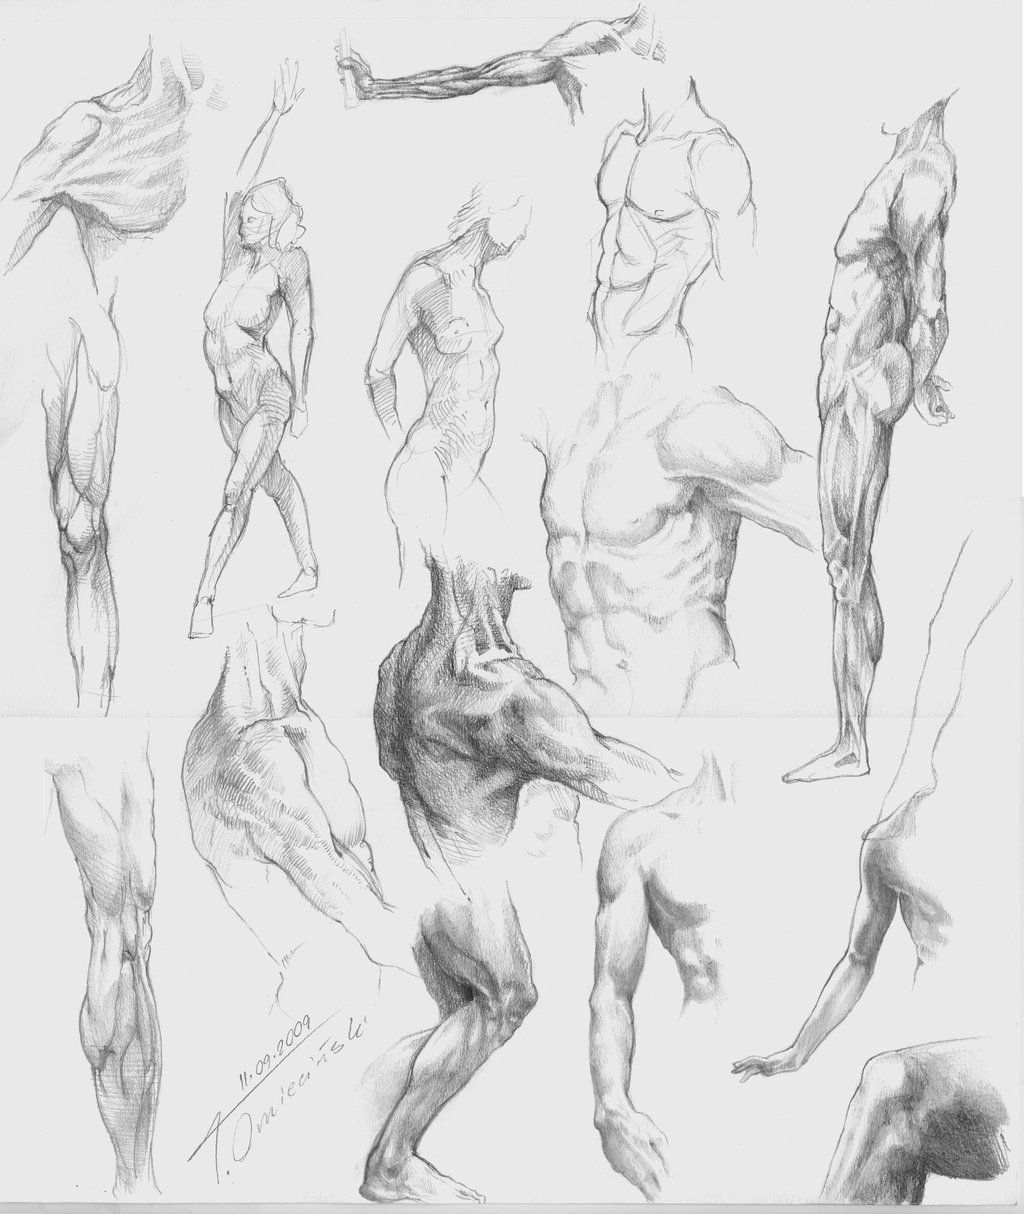 studies of the human body by ~TomekO on deviantART | Body, Light ...